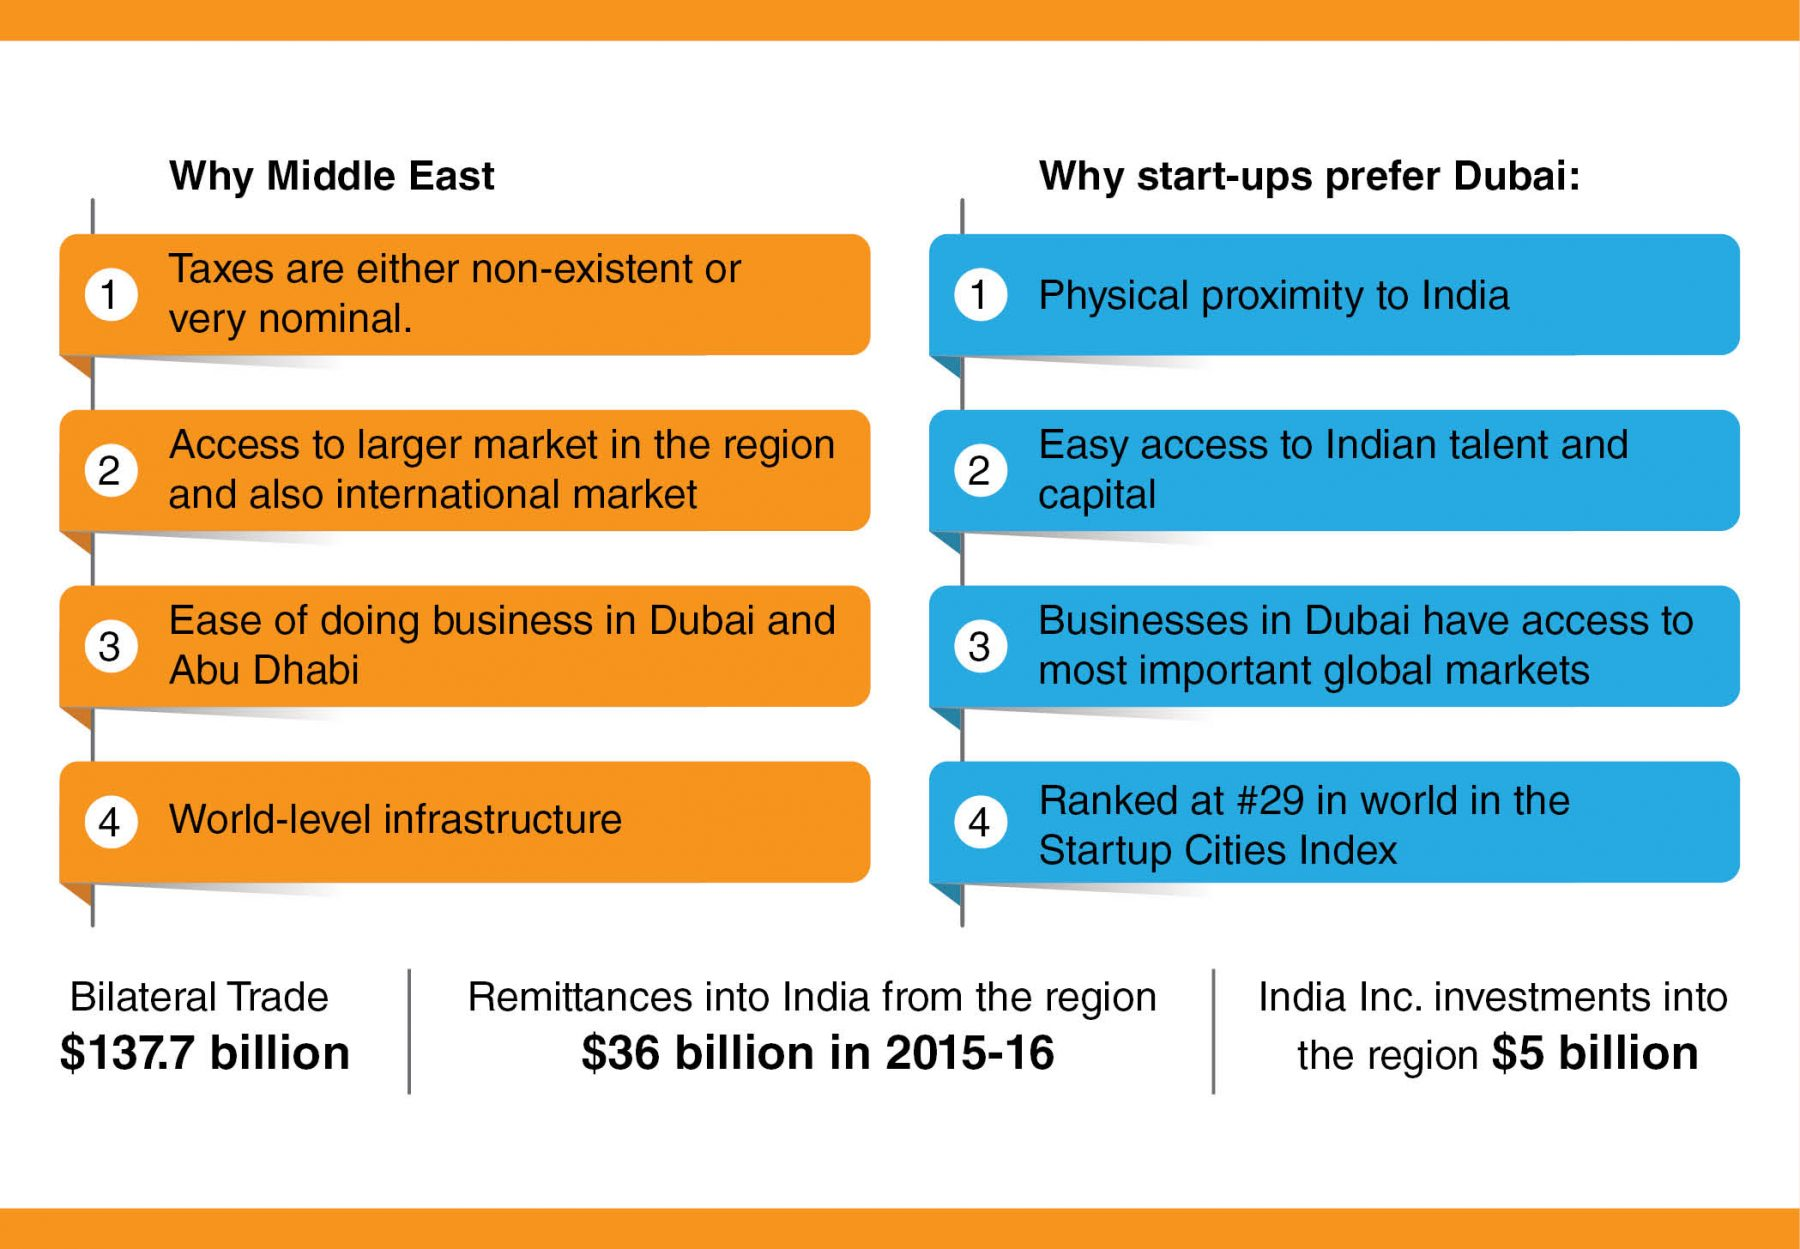 Middle East a key beachhead for Indian companies - India Inc